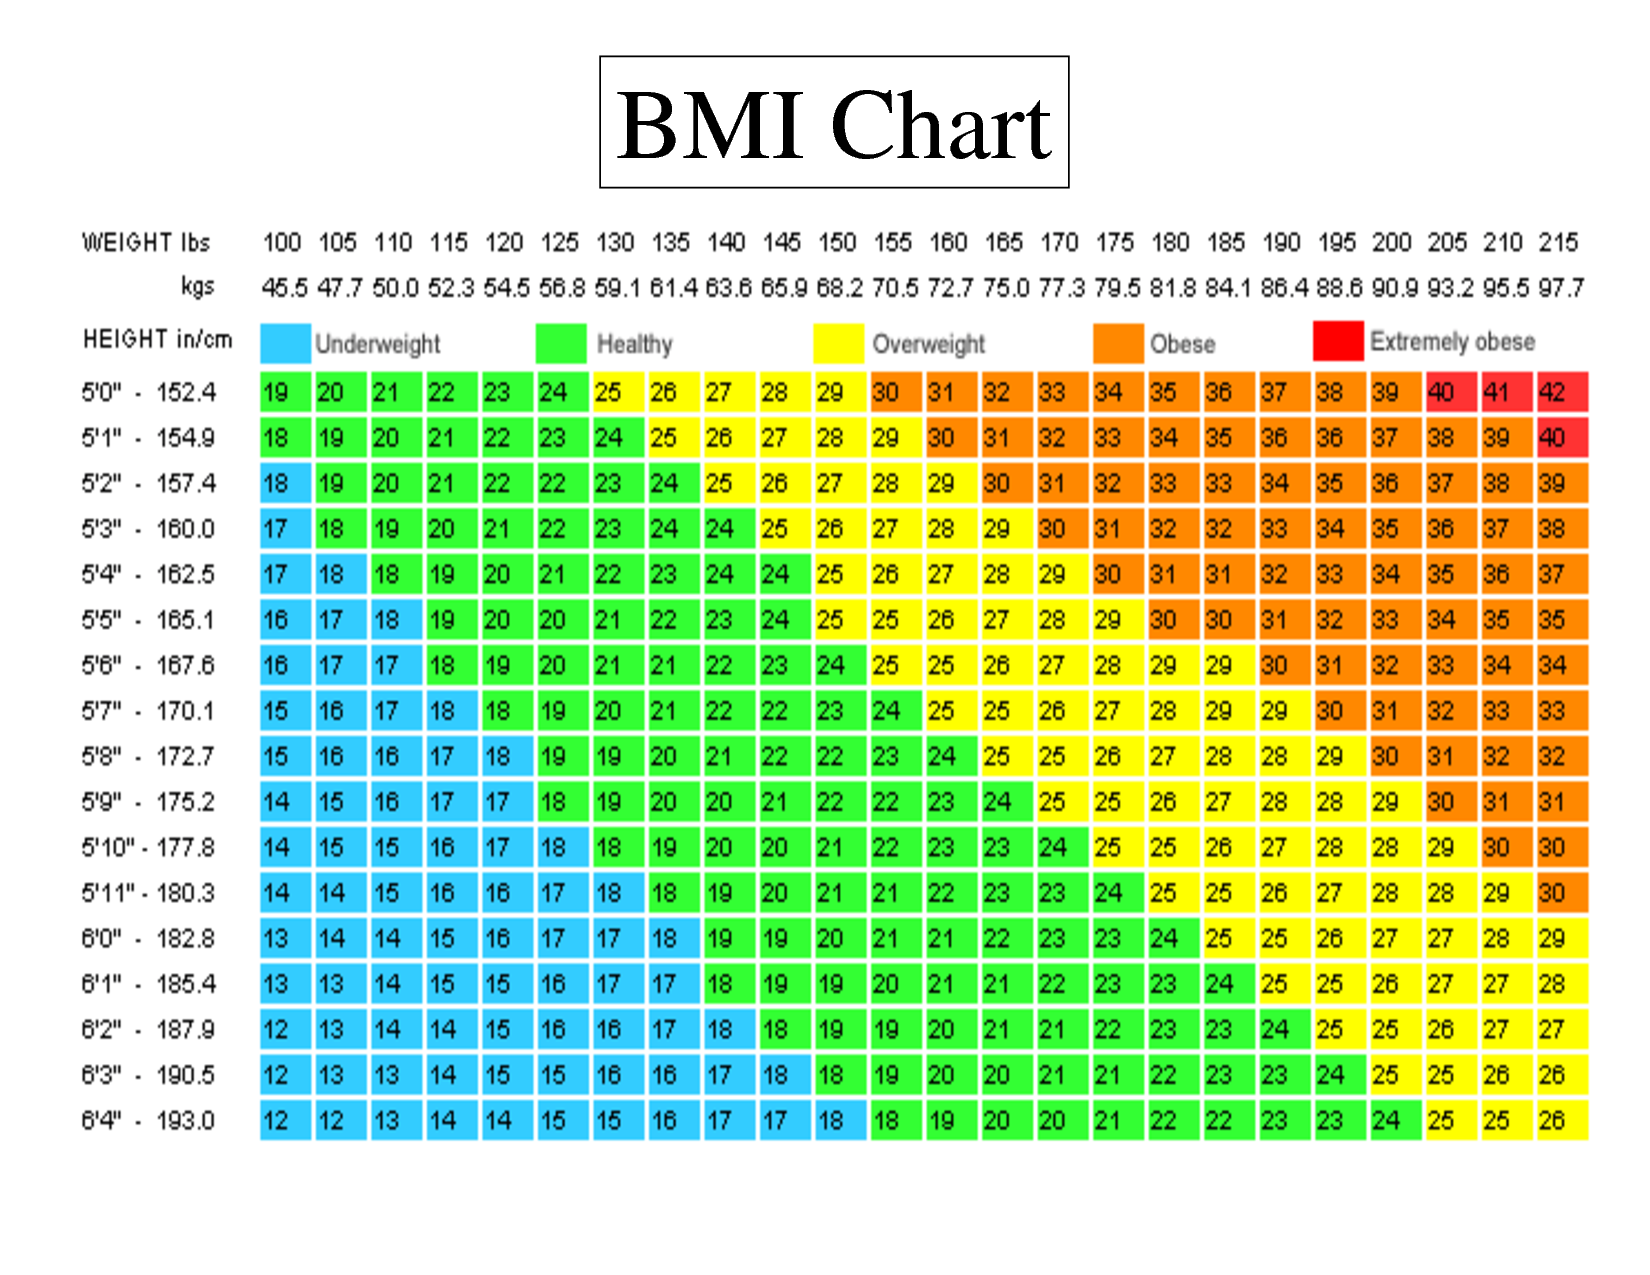 If you fall in the GREEN (healthy) blocks, you should stop obsessing over the number on the scale!